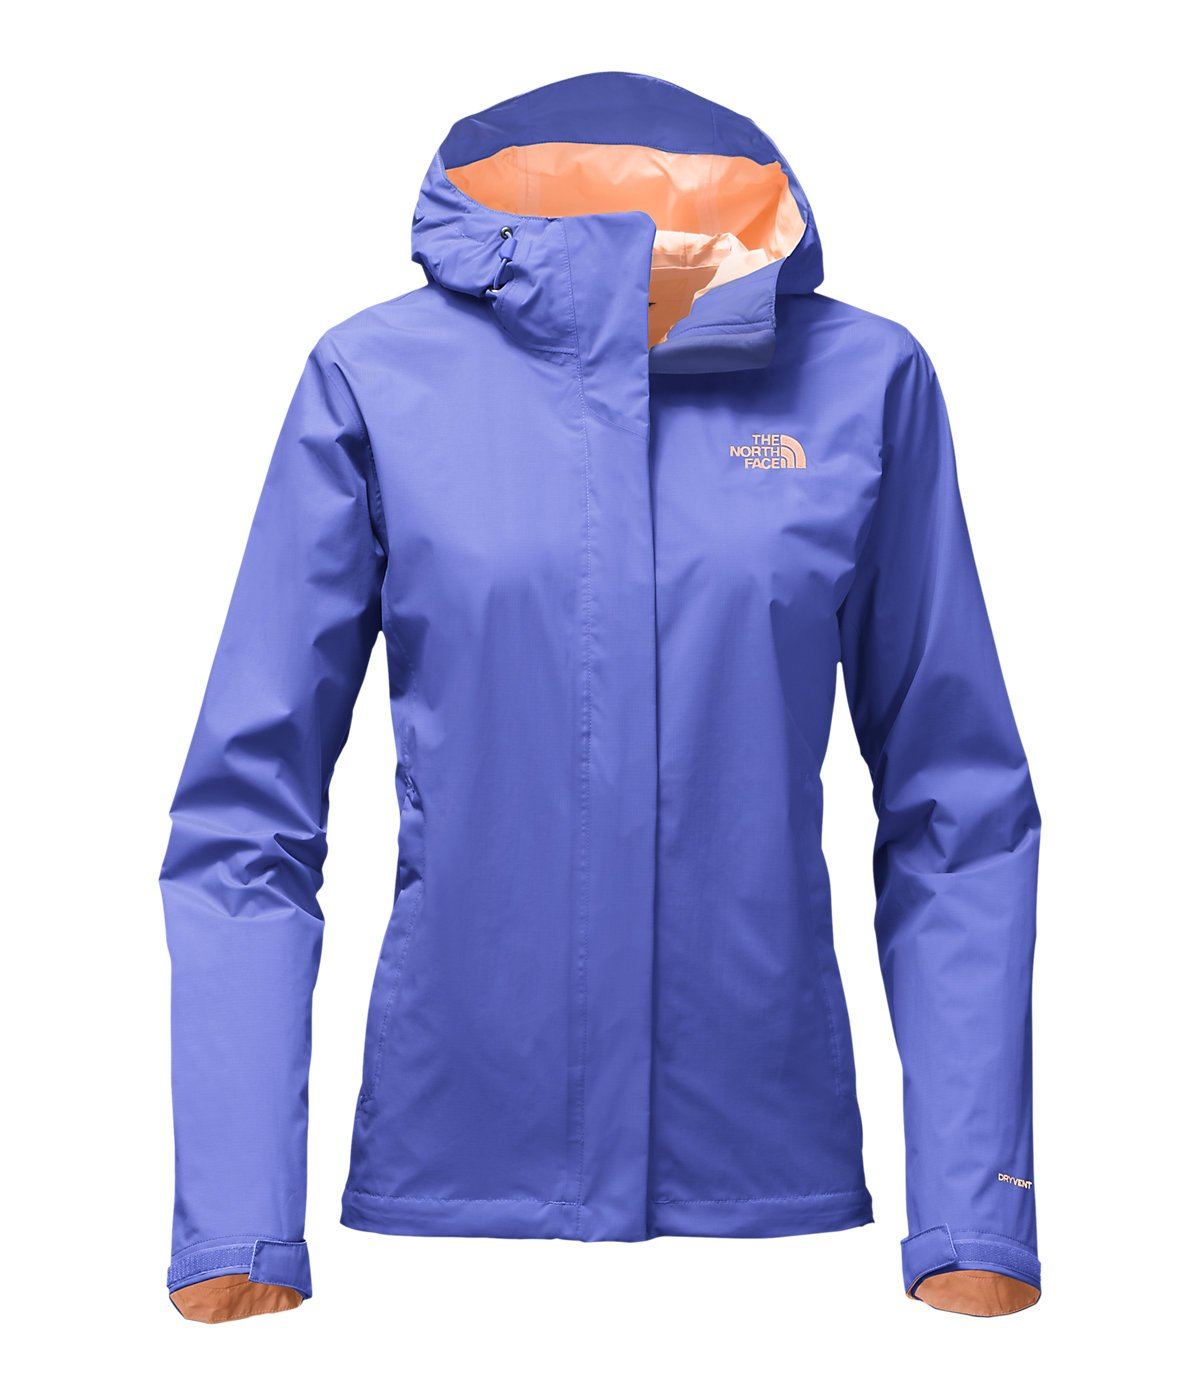 b10c1f485 The North Face Women's Venture 2 Rain Jacket